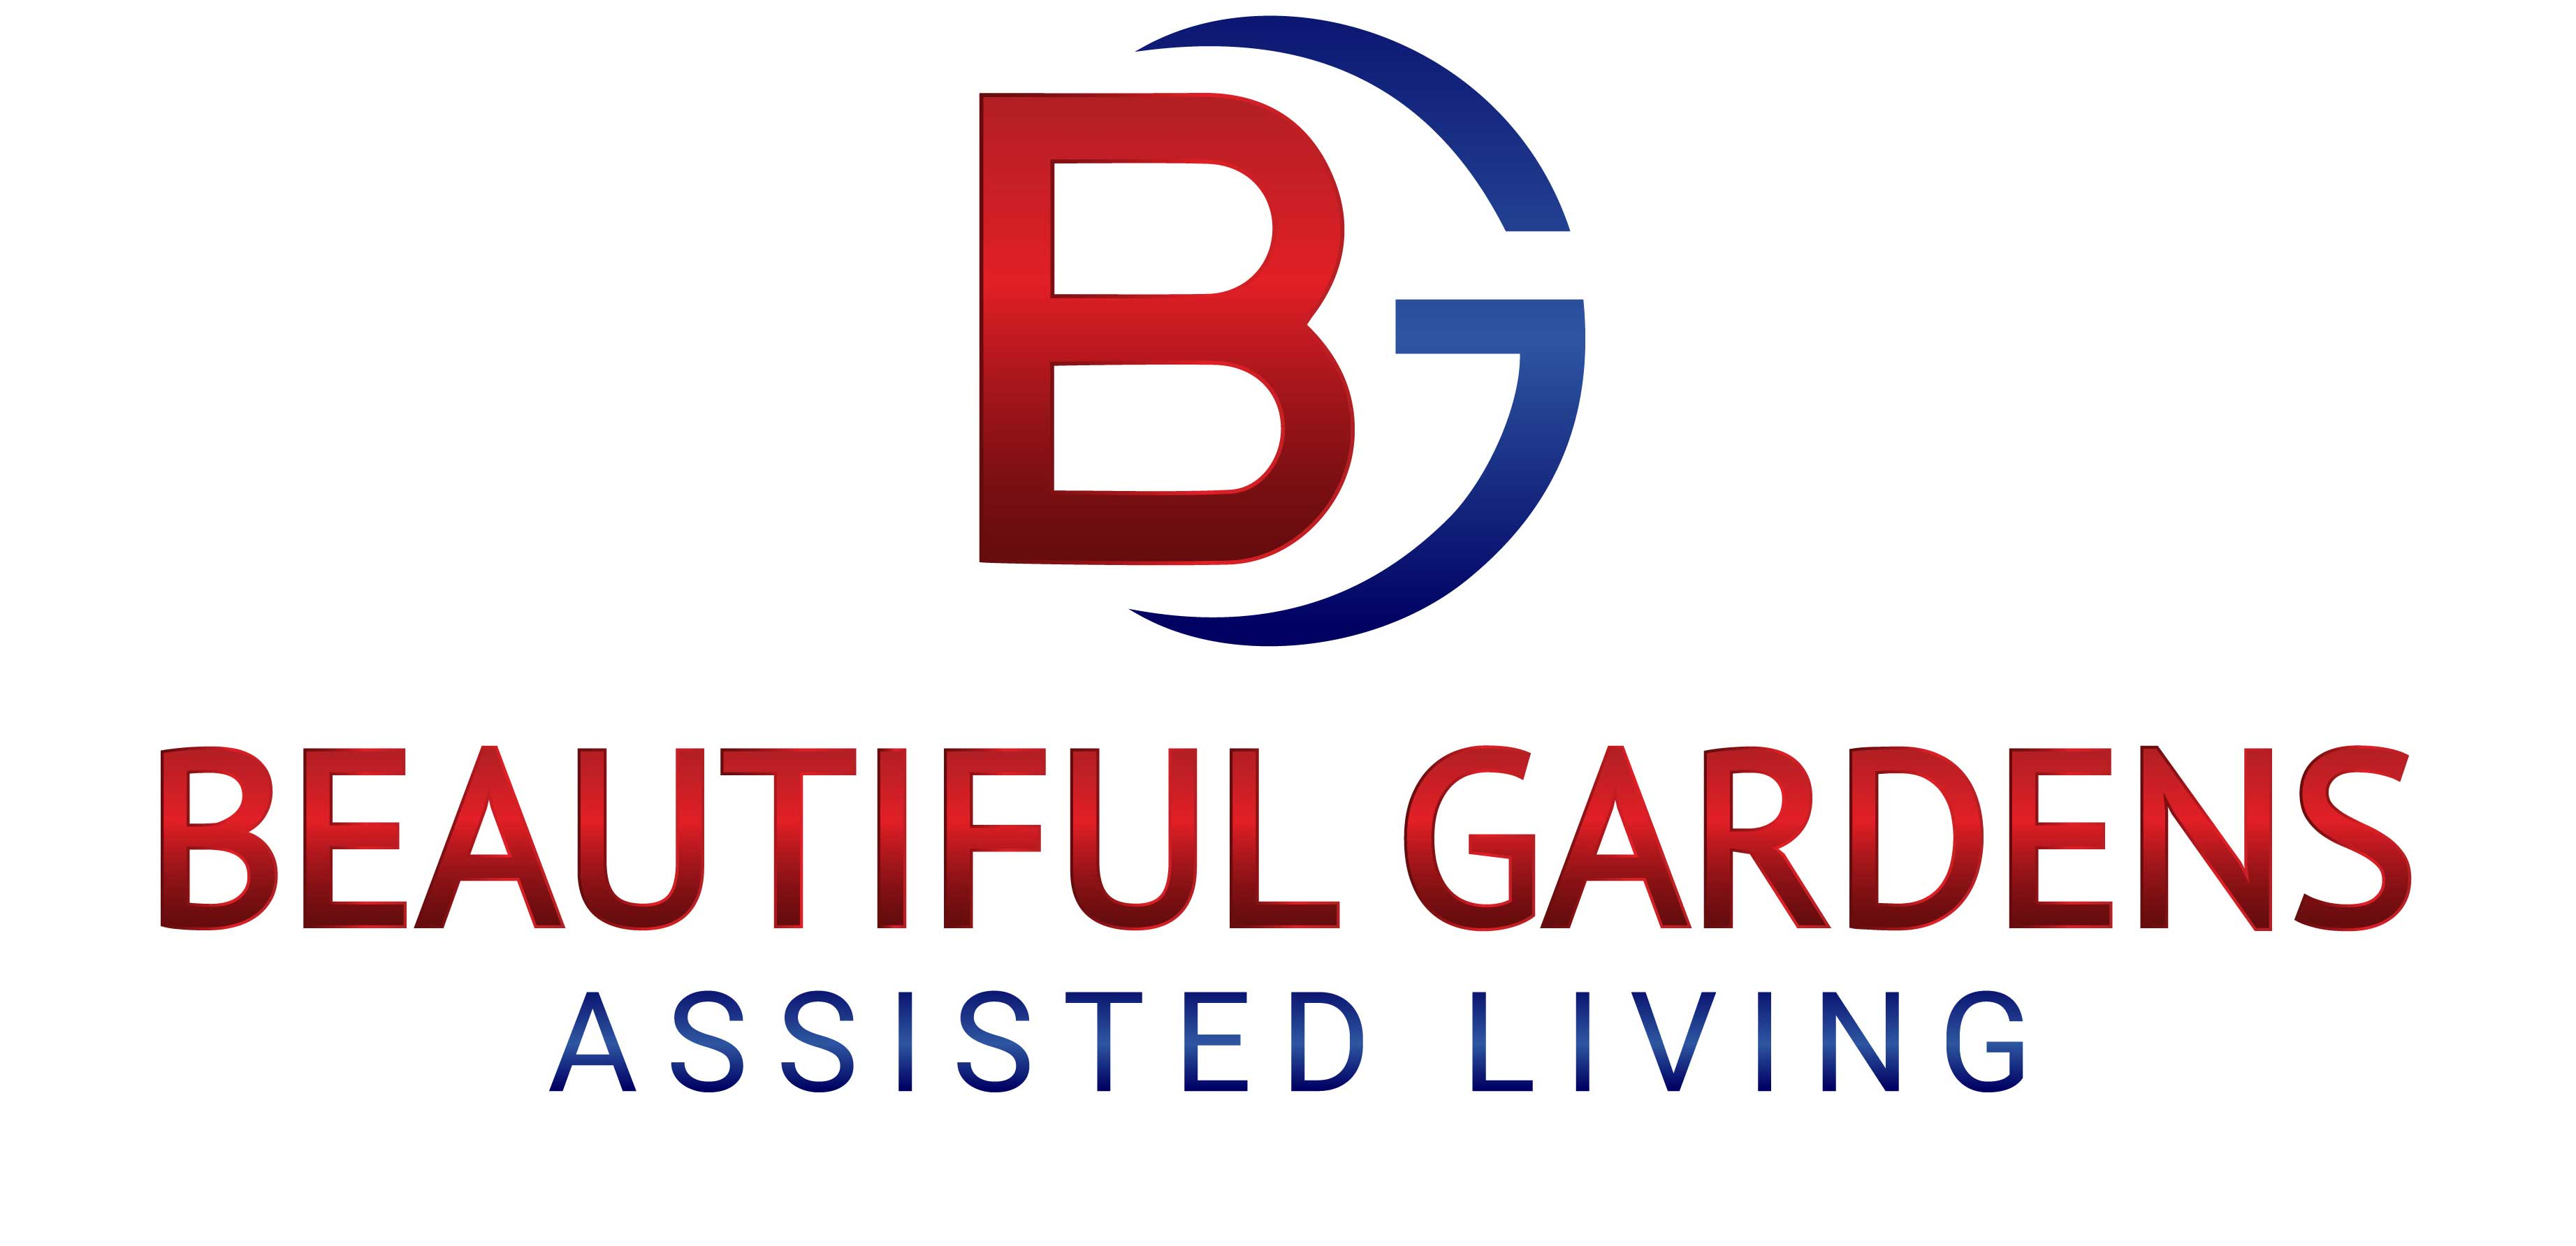 Beautiful Gardens Assisted Living Opens a New Assisted Living in Dallas